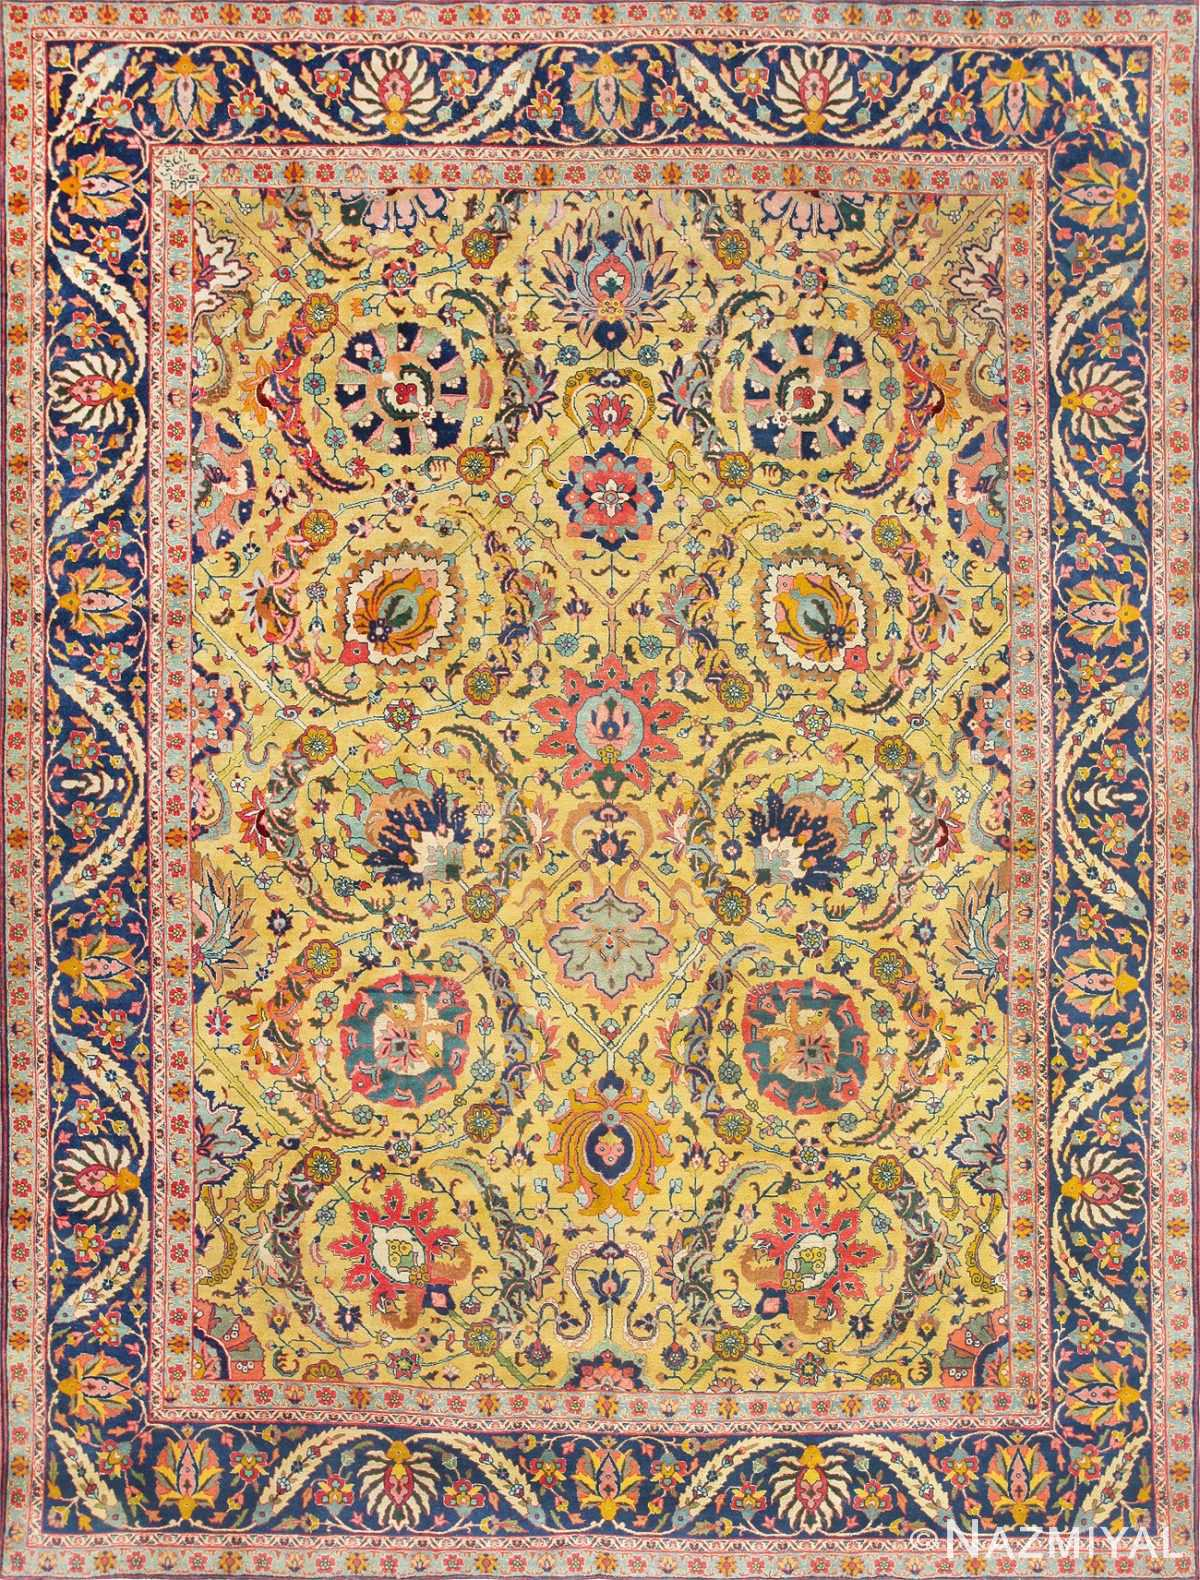 Antique Persian Sickle Leaf Carpet 47362 Large Image